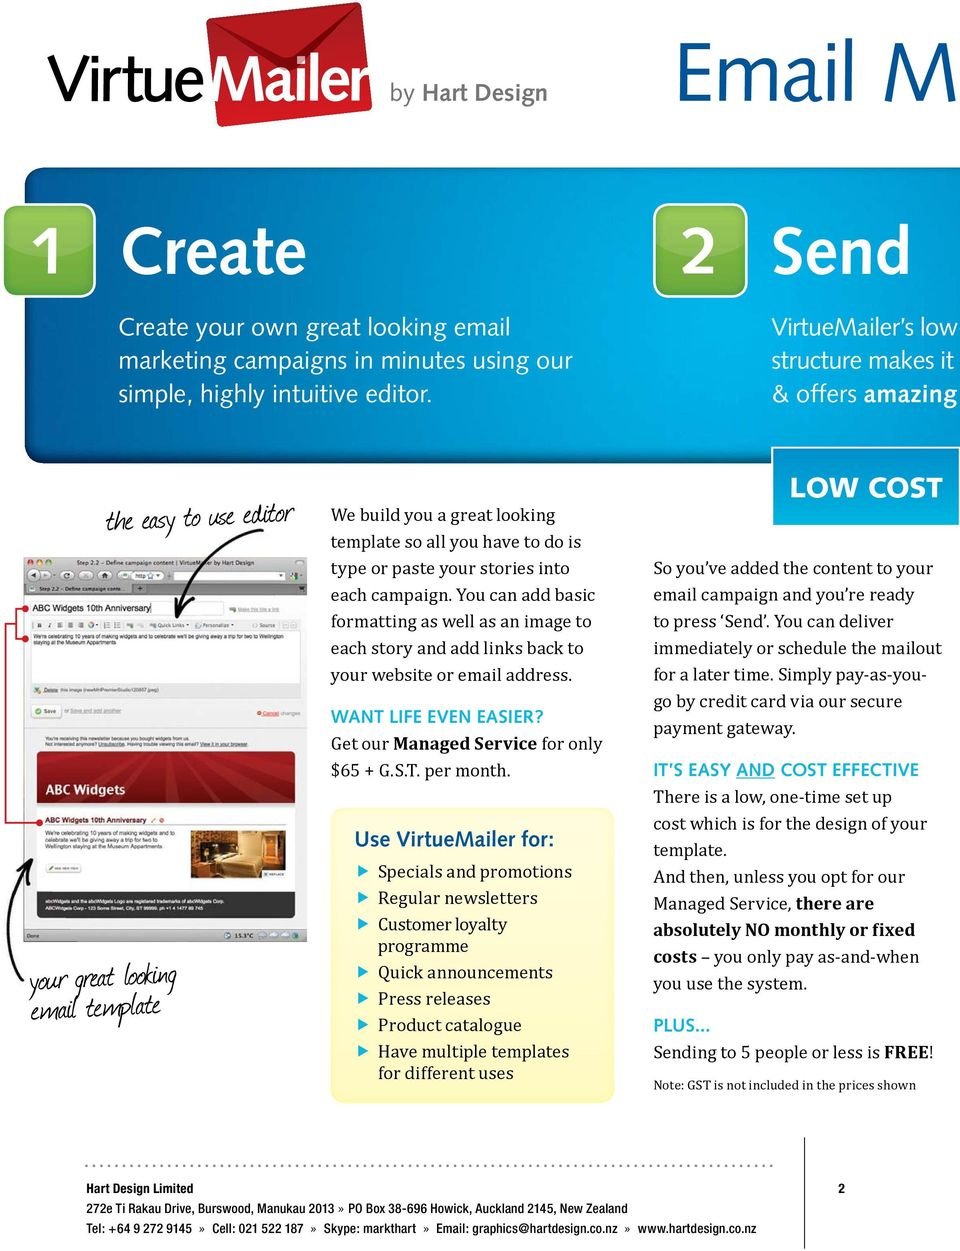 VirtueMailer s lowstructure makes it & offers amazing the easy to use editor your great looking email template WANT LIFE EVEN EASIER?